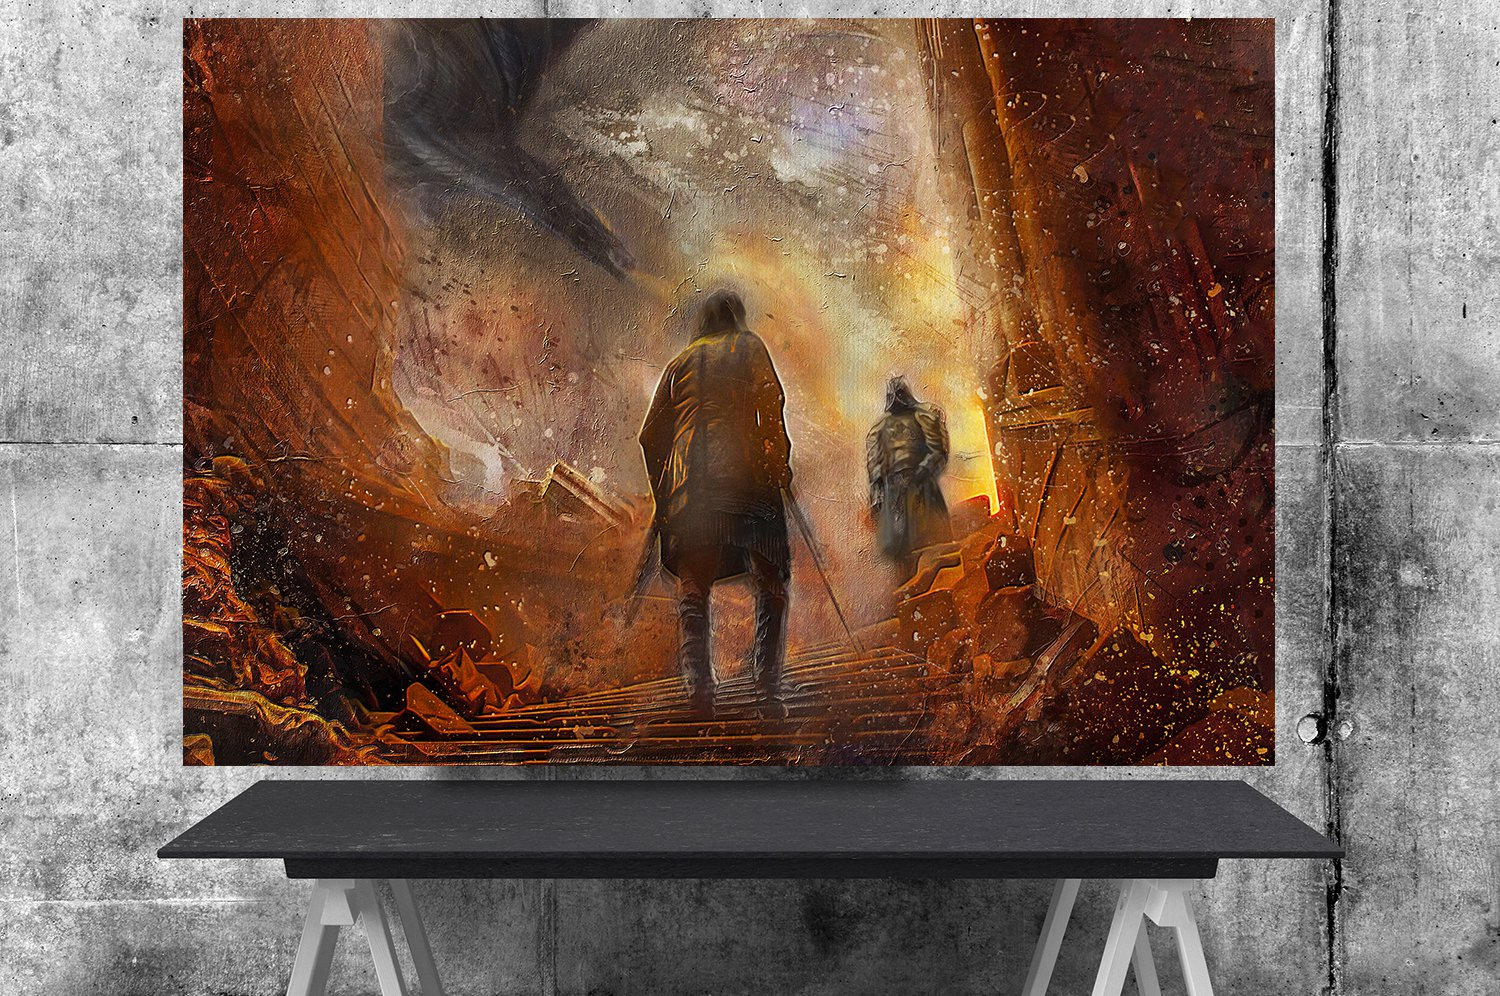 Game of Thrones, The Hound, The Mountain, Cleganebowl, 18x28 inches Poster Print